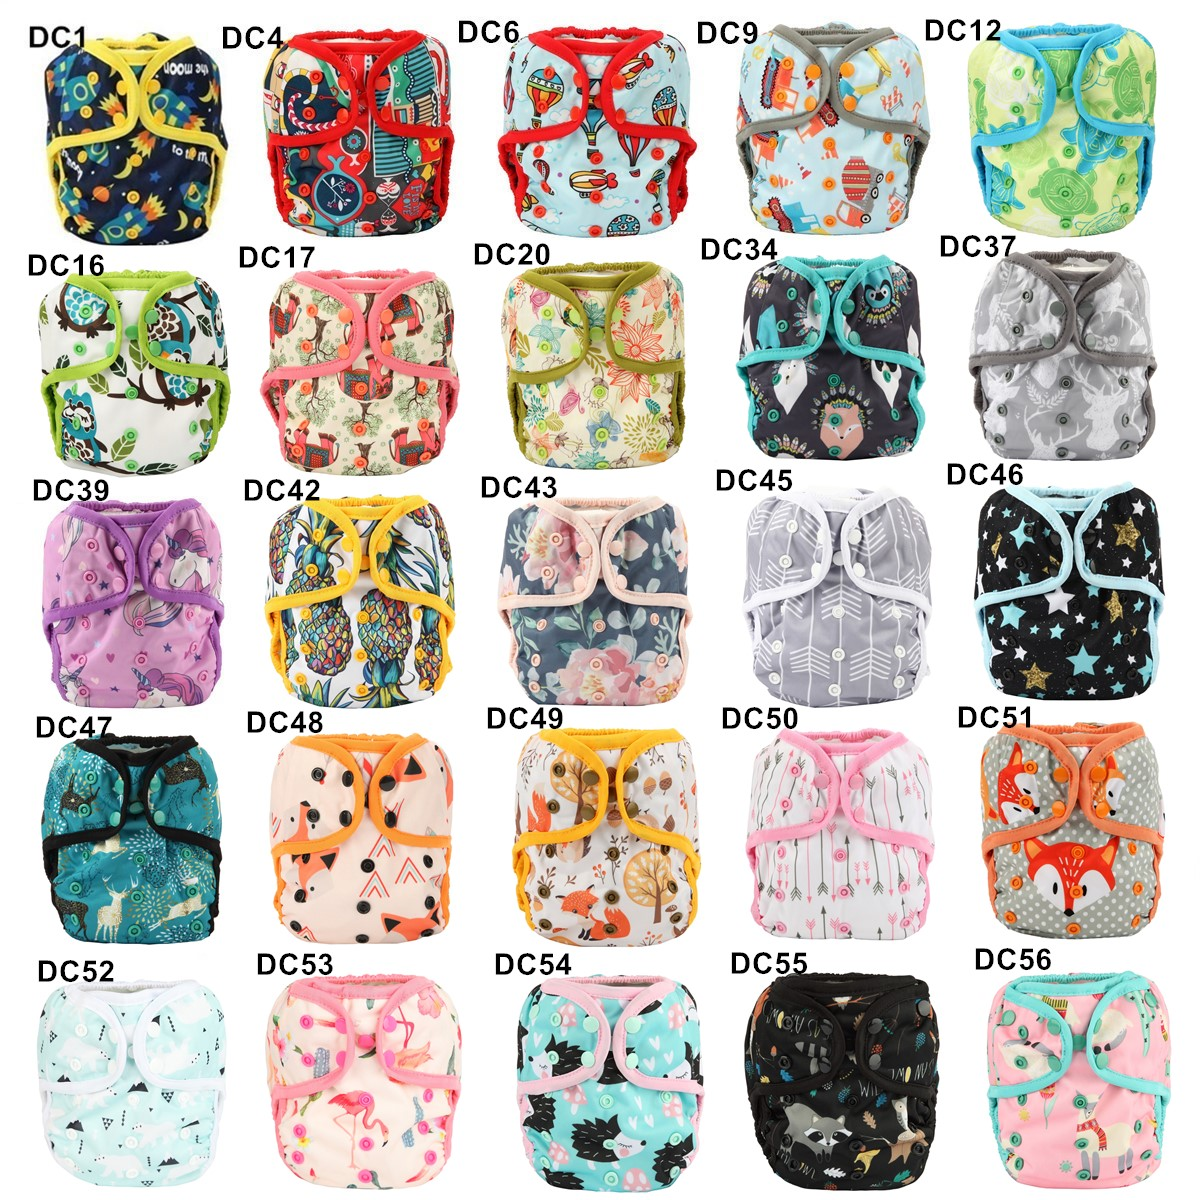 [Sigzagor]1 OS One Size Baby Cloth Diaper Cover Nappy Waterproof Double Gusset 4-13kg 40 Design | Happy Baby Mama